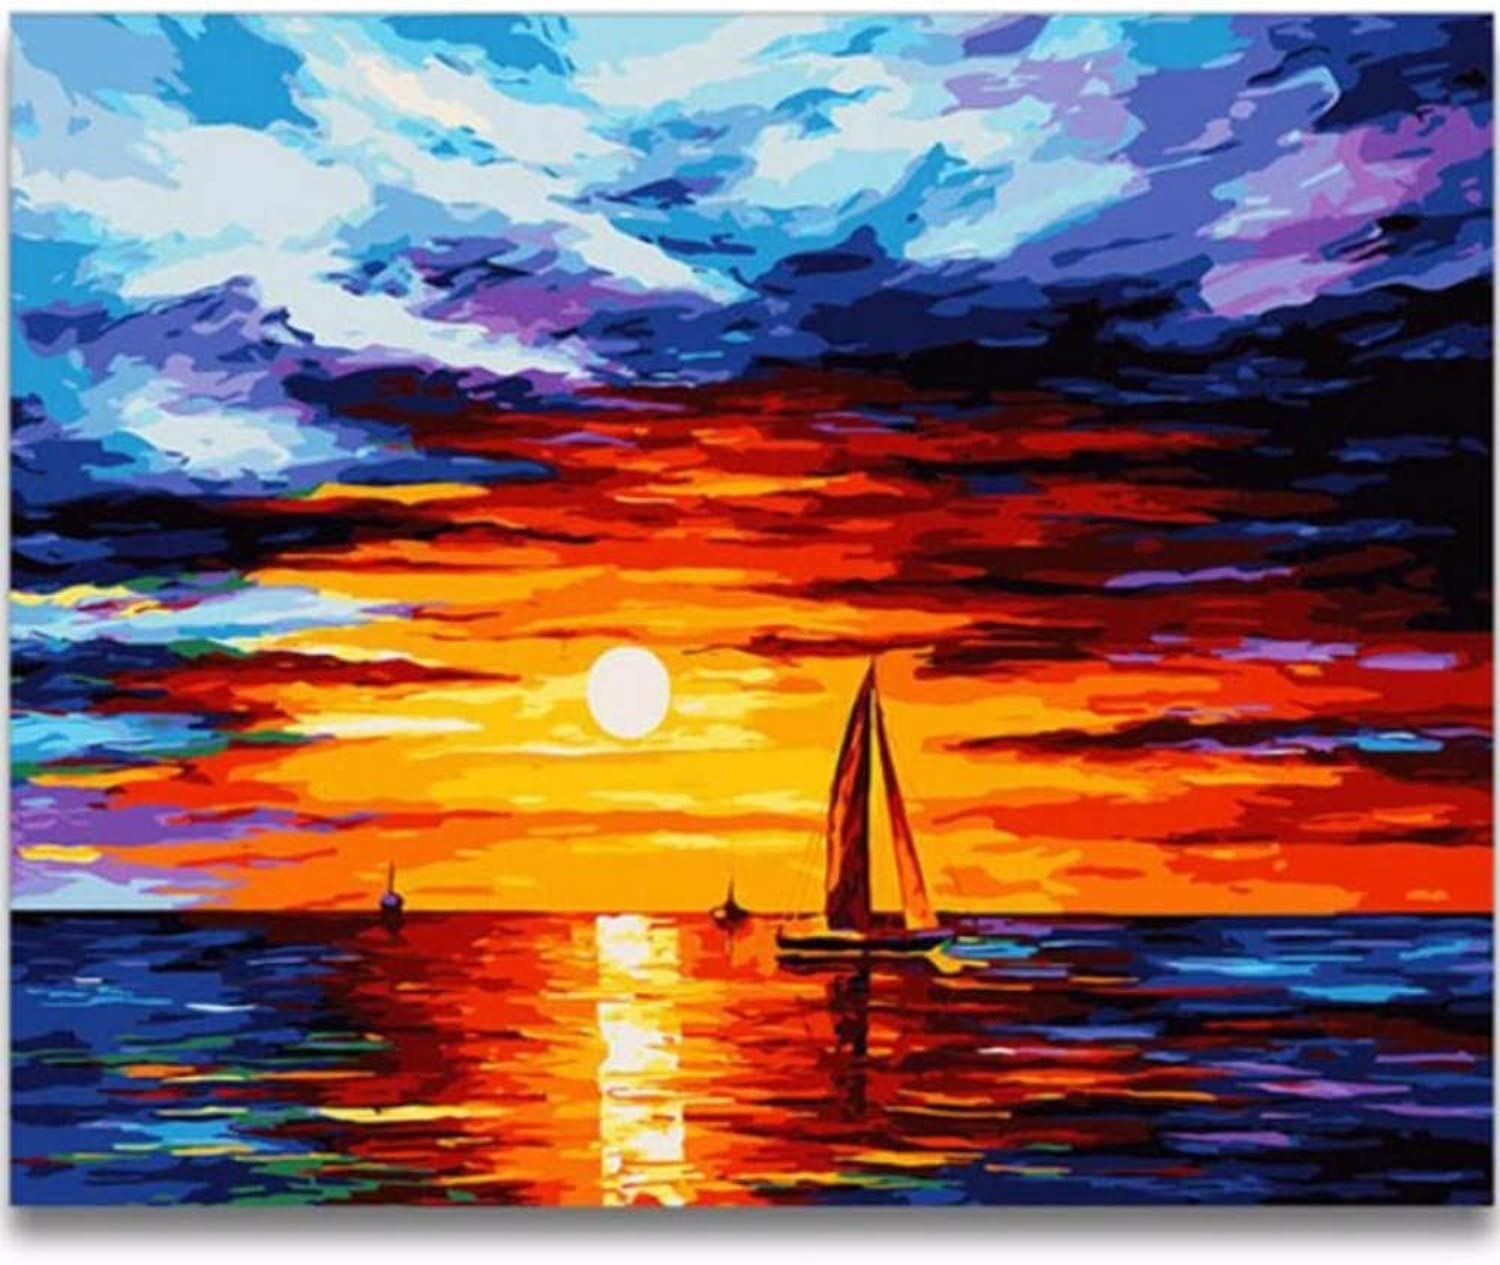 LIWEIXKY Sea Boat Diy Painting By Numbers Landscape Painting Calligraphy Acrylic Paint By Numbers For Home Decor Artworks, Framed, 50x60cm